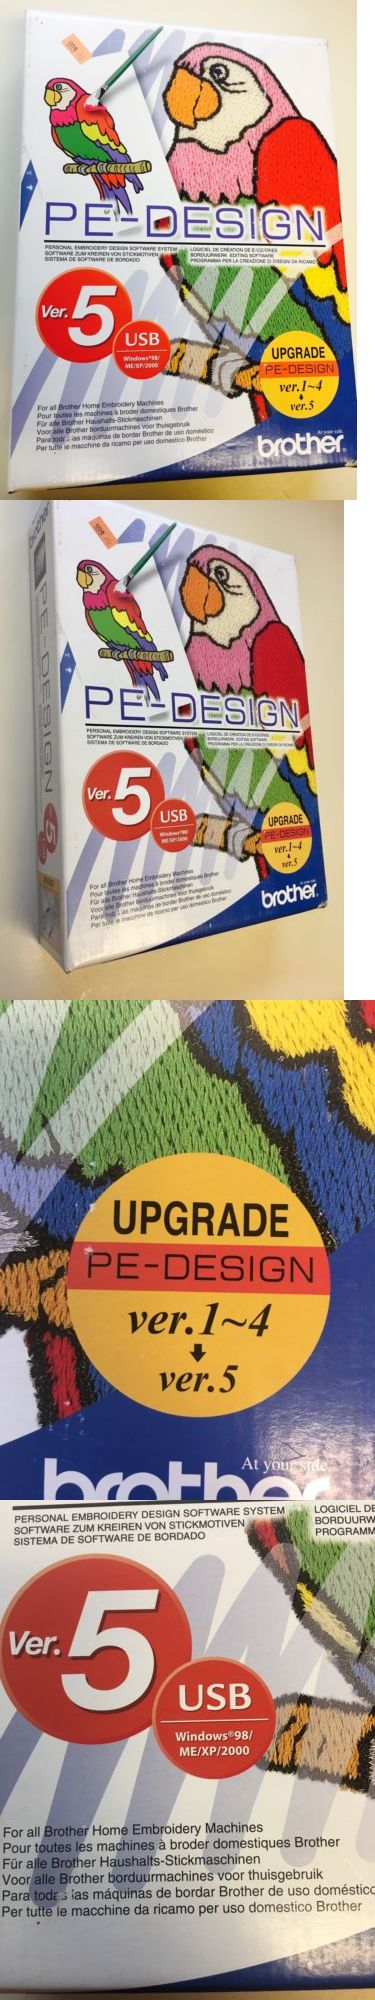 Digitizing Software 71197: Brother Pe Design Ver 5 Embroidery Design Software, Card Reader, Rewritable Card -> BUY IT NOW ONLY: $274.15 on eBay!